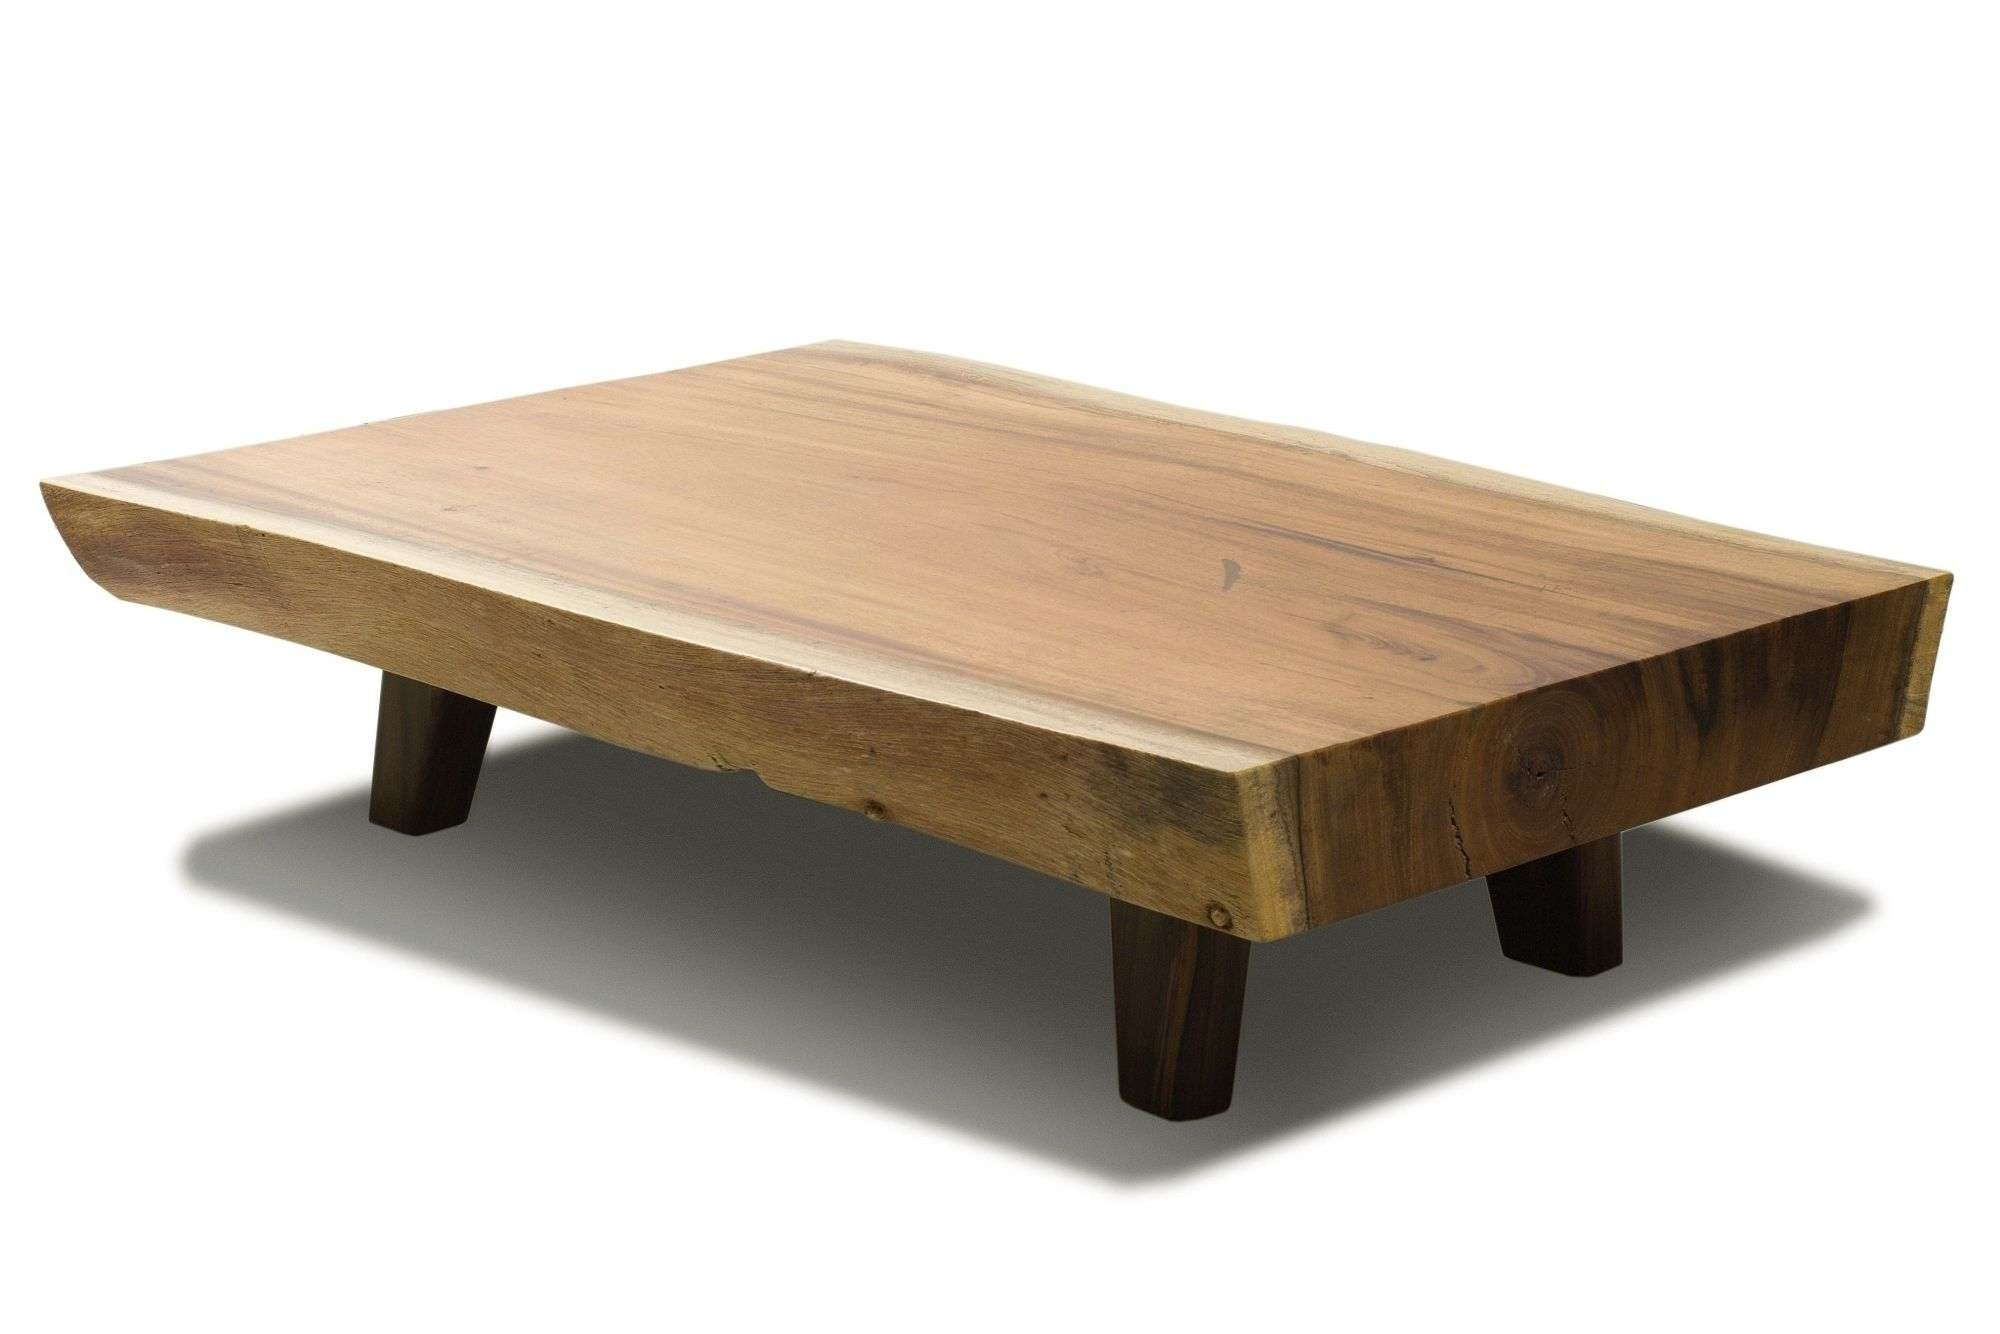 Coffee Tables Ideas: Modern Large Wooden Coffee Table Large Coffee Inside 2017 Very Large Coffee Tables (View 4 of 20)